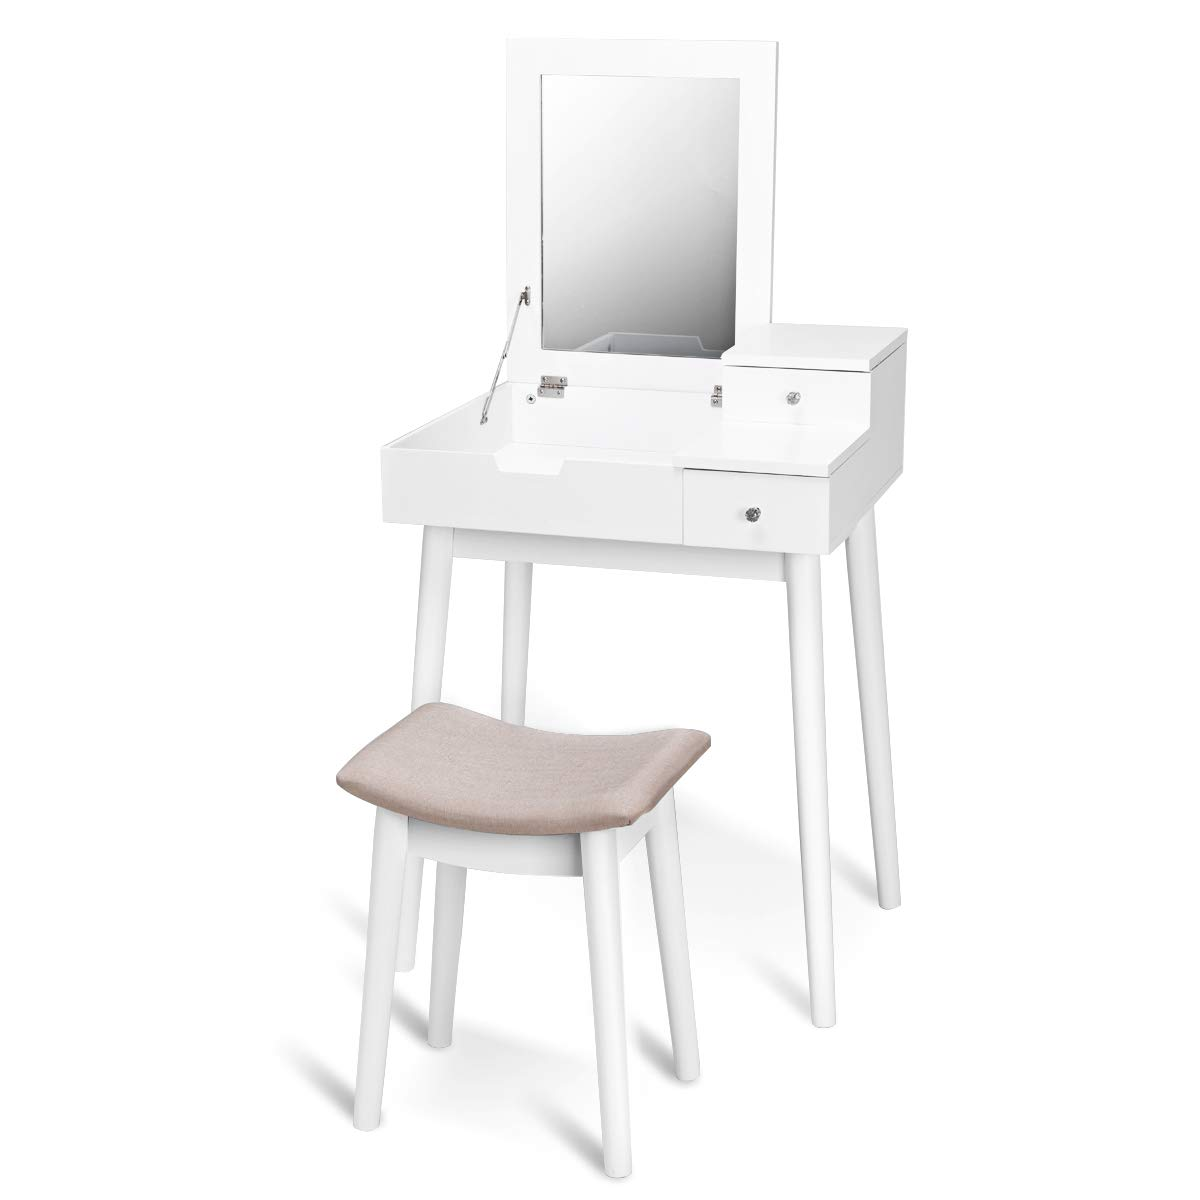 CASART White Vanity Sets - Makeup Organizer Table | Simple Dressing Table | Multi-Purpose Jewelry Armoire with Flip Top Mirror, Matching Stool, 2 Storage Drawers in Bedroom, Home